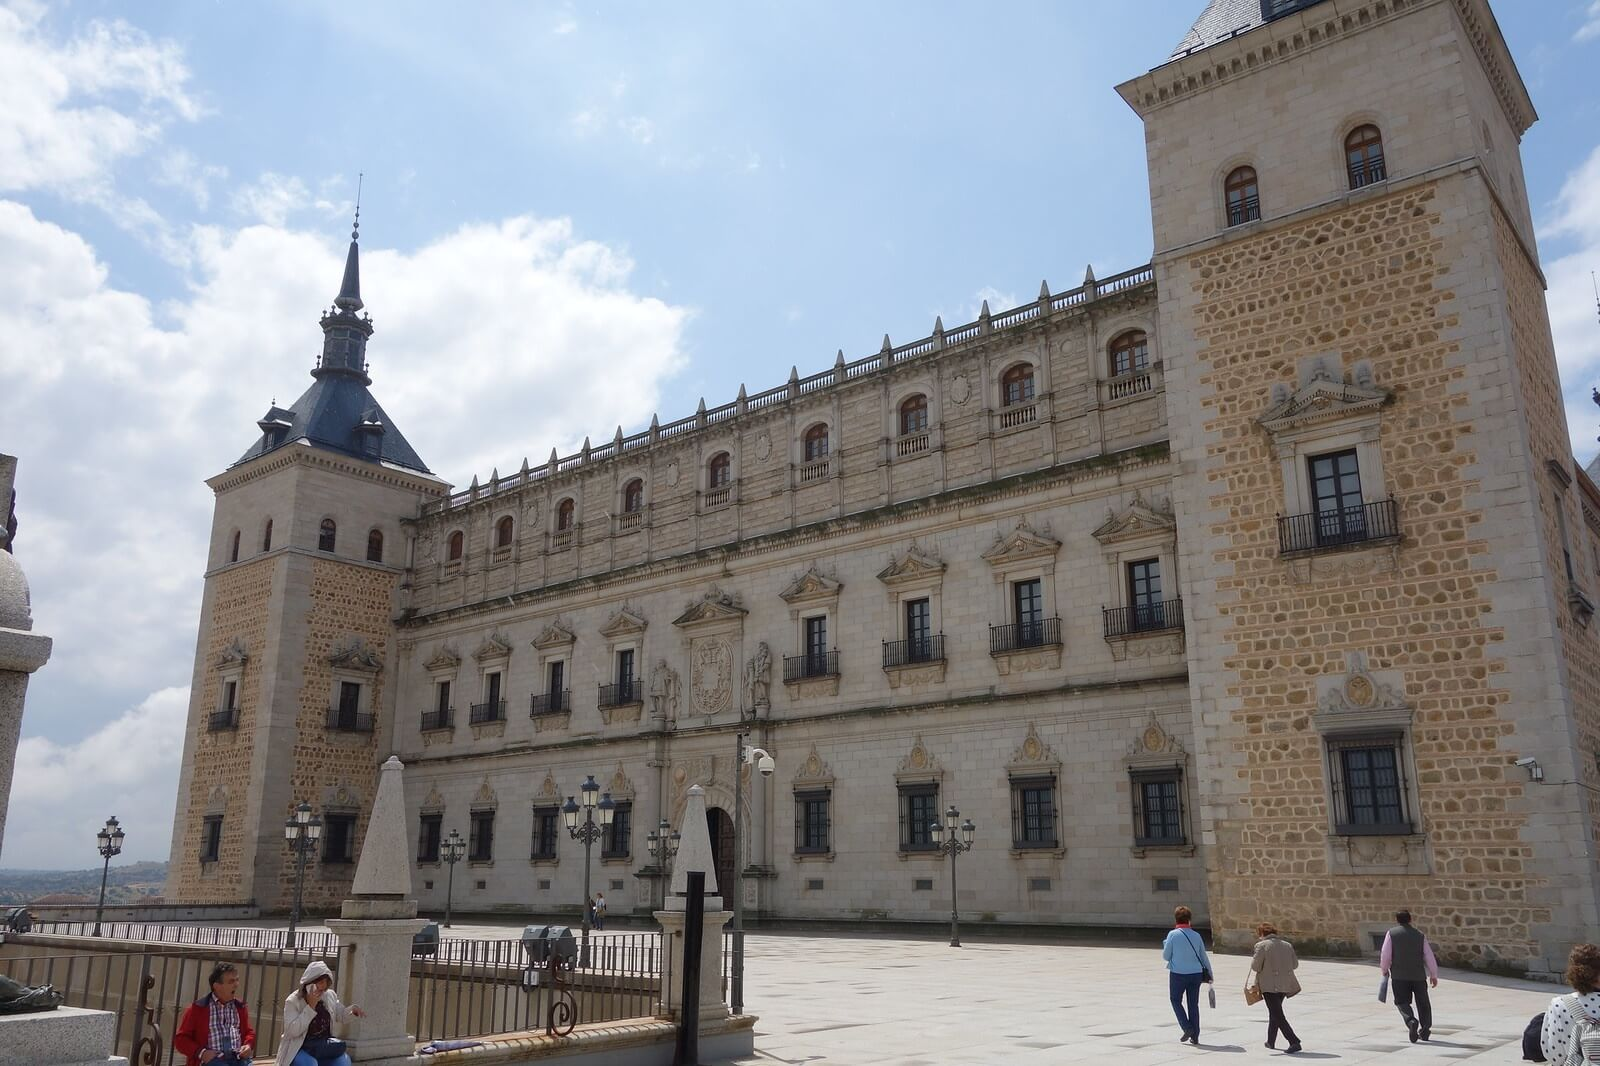 Top 10 virtual tours of Spain - 6. Military Museum of Toledo